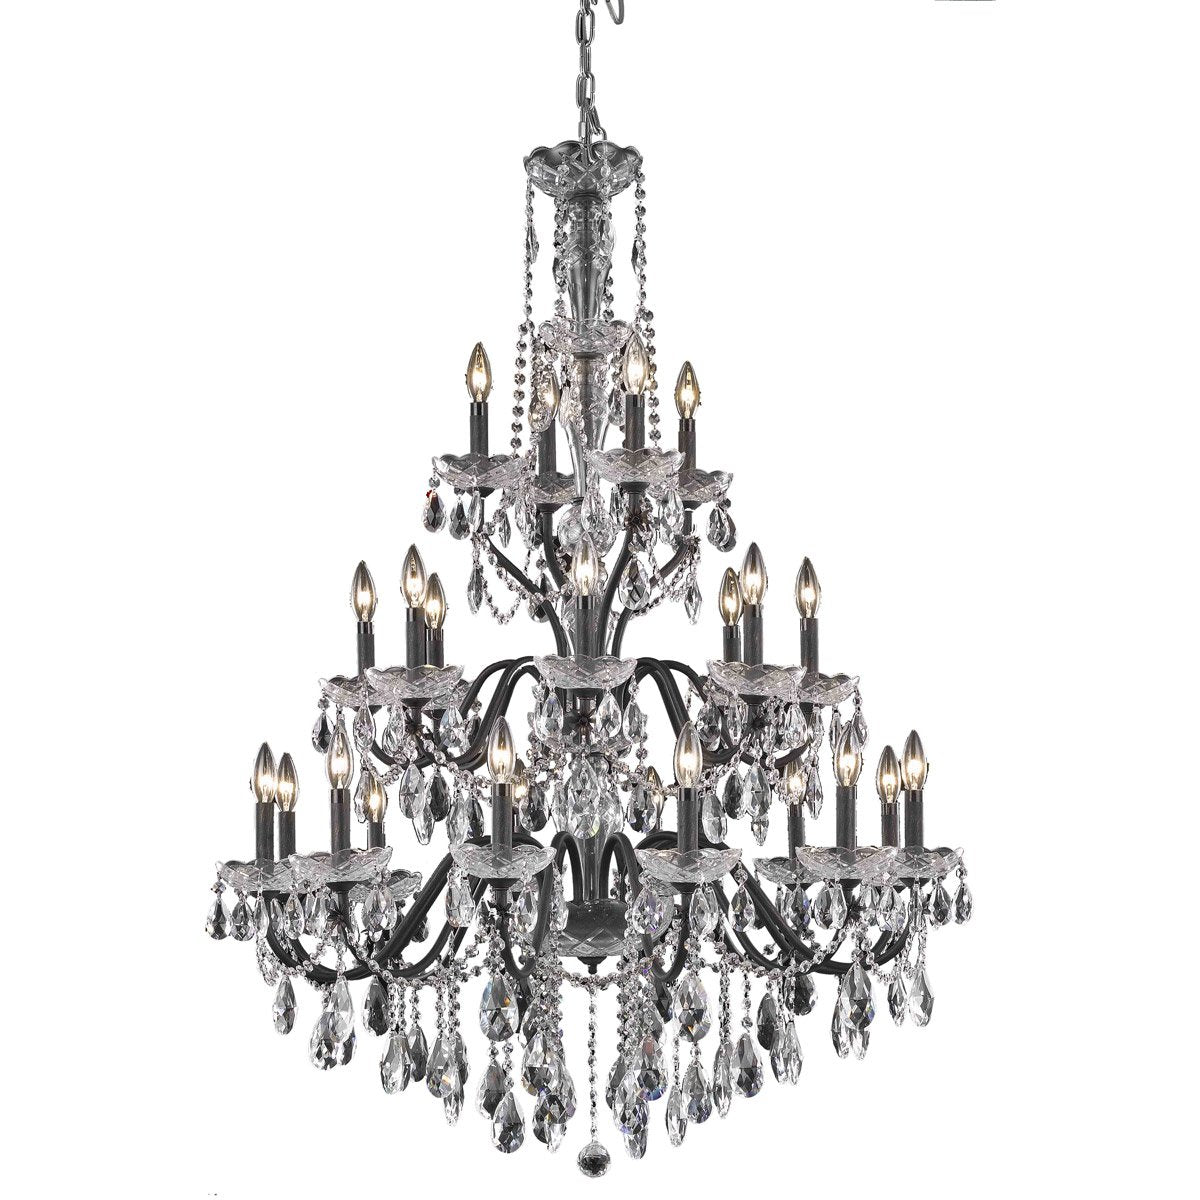 St. Francis 36 Crystal Foyer Pendant Chandelier With 24 Lights - Dark Bronze Finish And Spectra Swarovski Crystal Chandelier